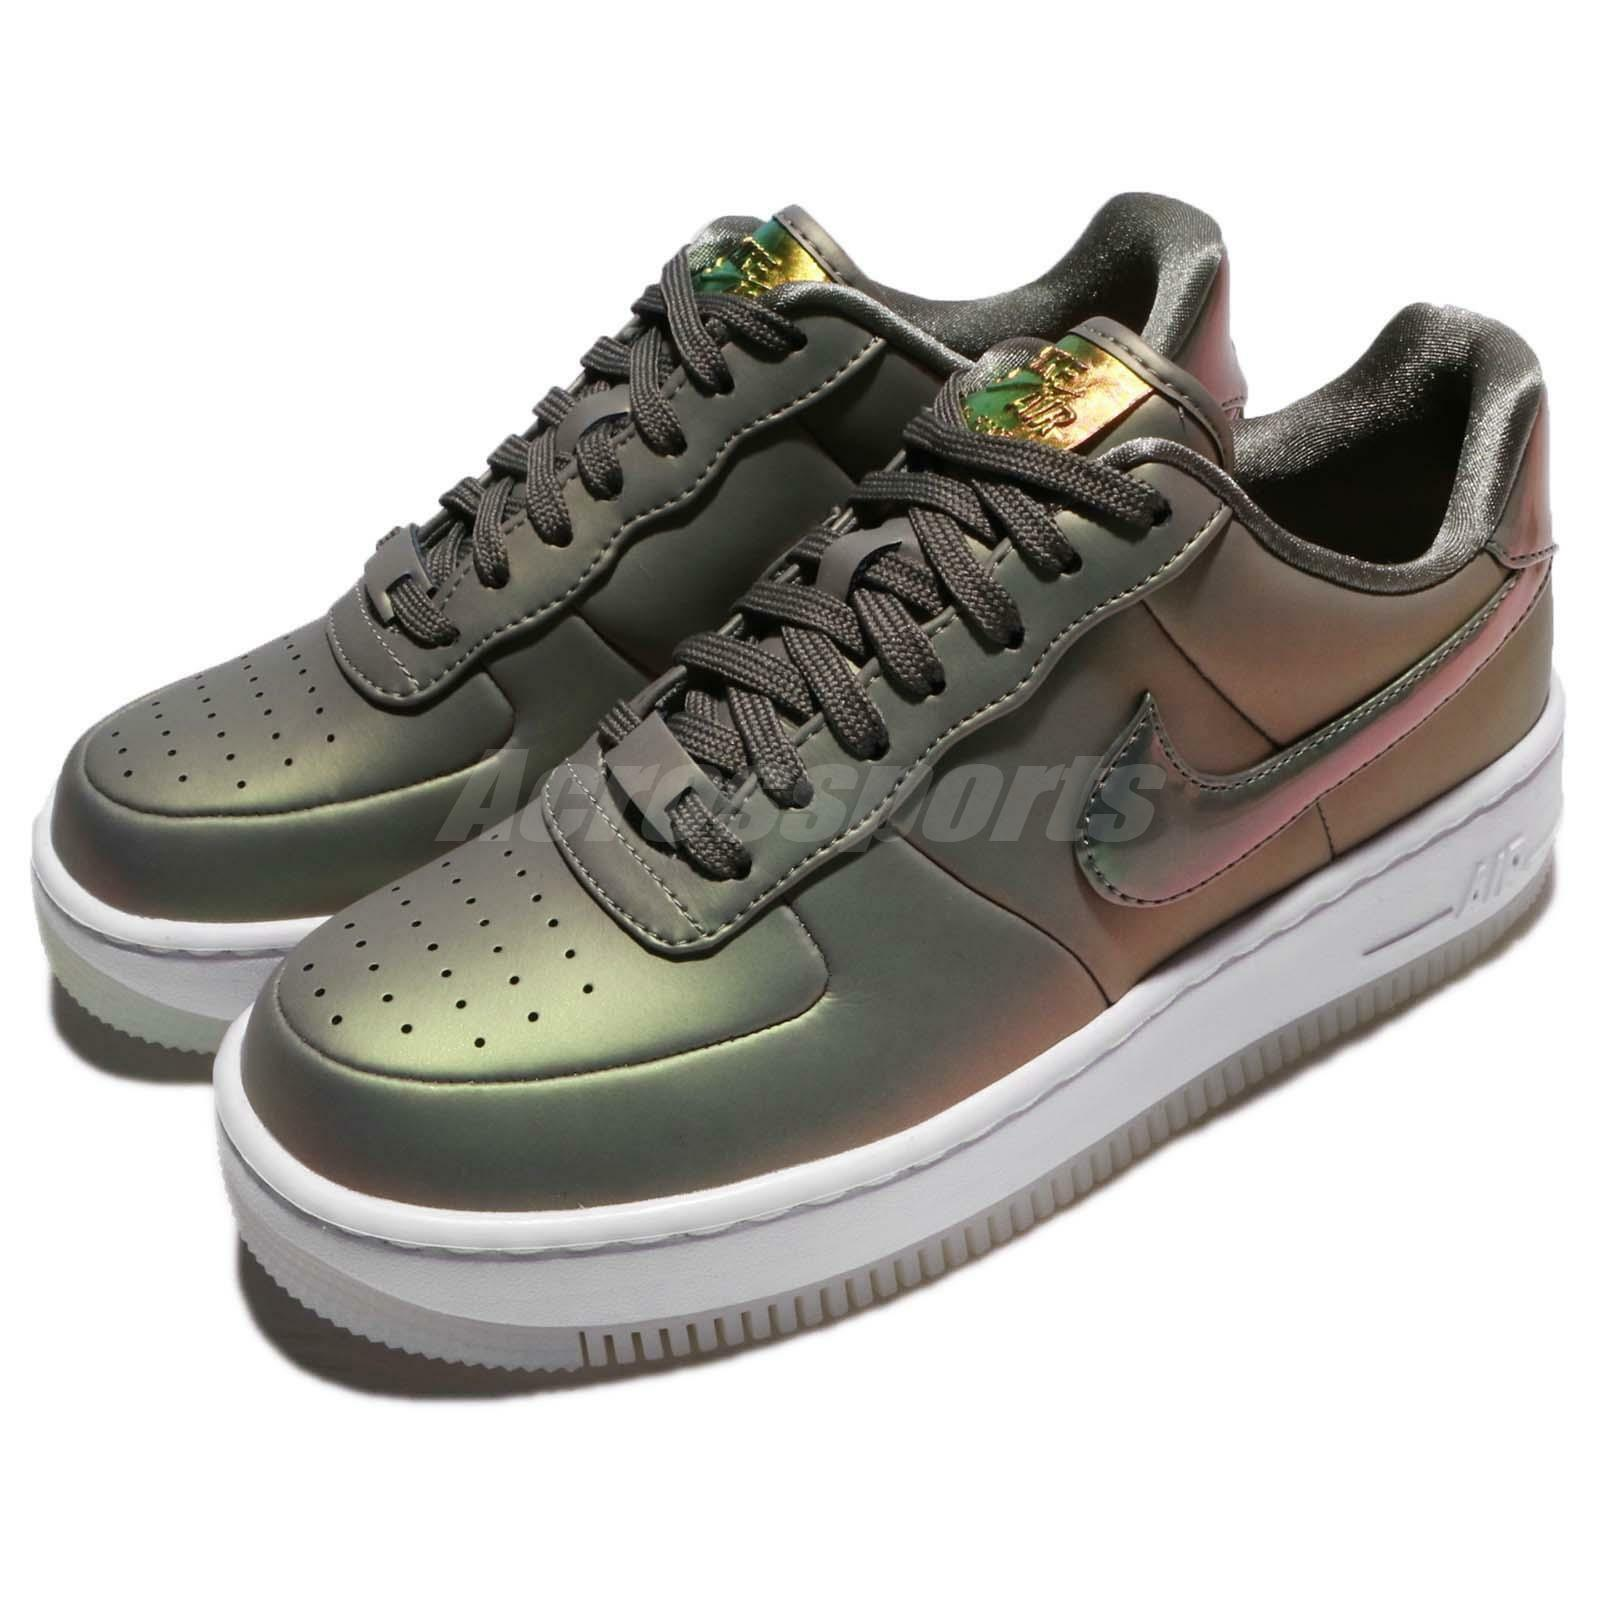 Nike Wmns AF1 Upstep PRM Dark LX Air Force 1 Dark PRM Stucco Lux Donna Shoes AA3964-001 2186fb